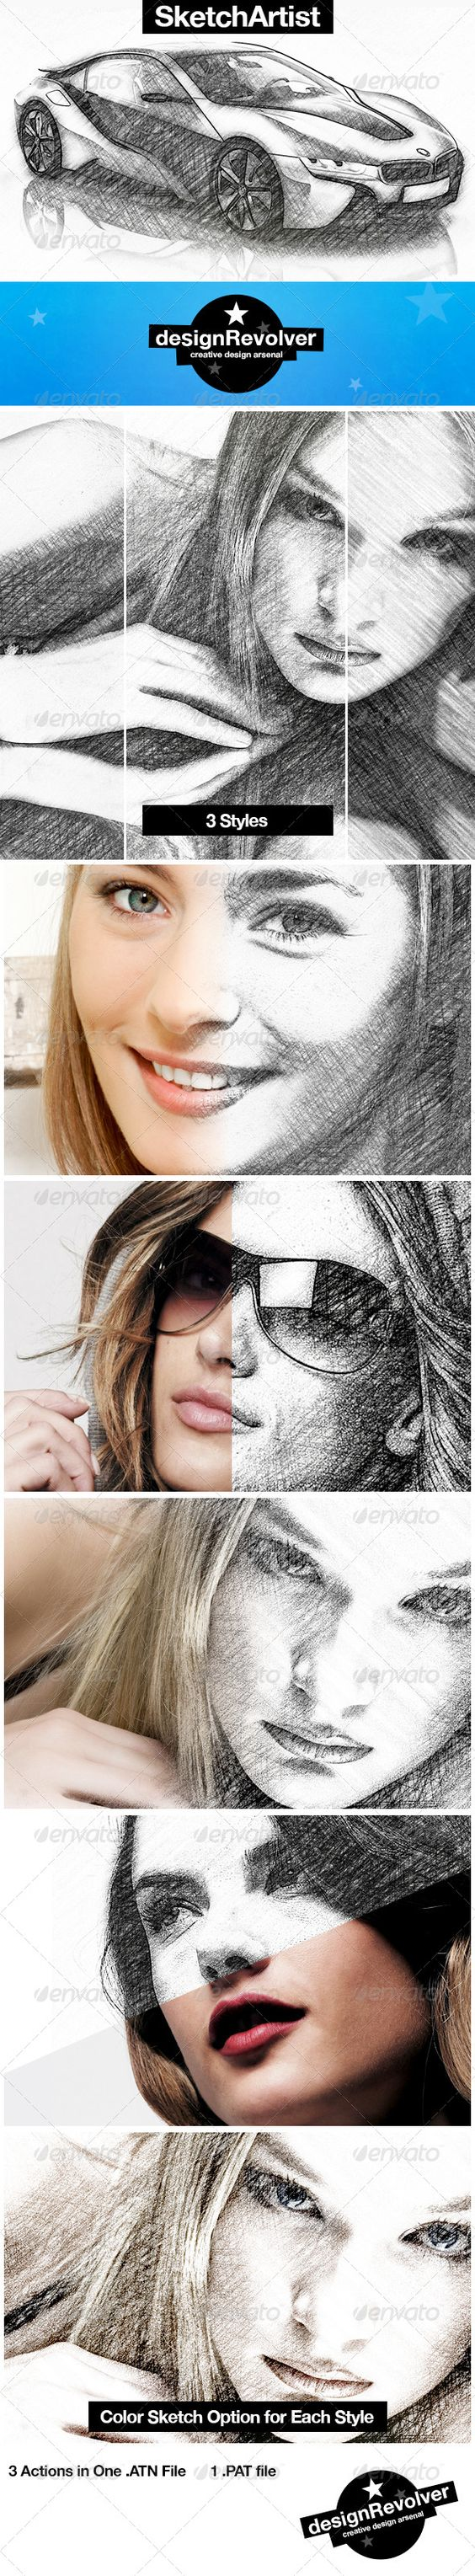 Sketch Artist Photoshop Action #GraphicRiver Turn your photos into pencil sketches with SketchArtist actions. The pack contains 3 actions, each giving you a different sketch style. You can also have a color sketch effect with each style. The results will depend on the original resolution of the photo, but you can chance sketch pattern sizes after applying the effect. Created: 26August13 Add-onFilesIncluded: PhotoshopPAT #PhotoshopATN MinimumAdobeCSVersion: CS WorksWith: TIFF #PSD #JPG #RAW…